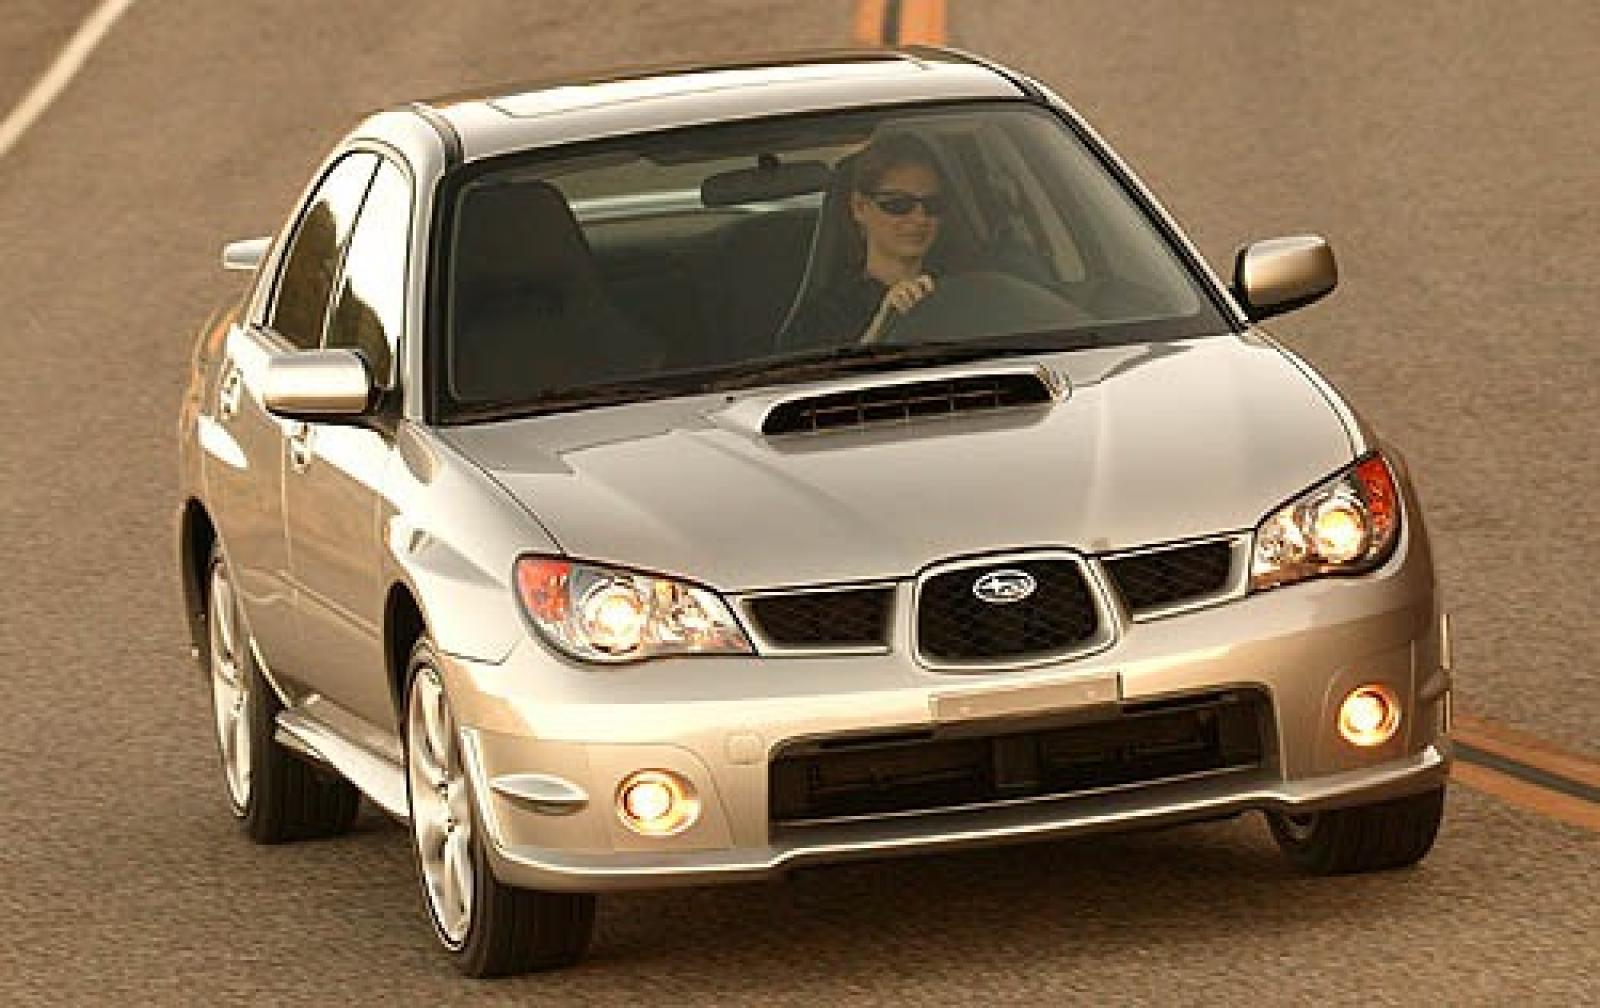 2006 subaru impreza information and photos zombiedrive 2006 subaru impreza wrx l exterior 4 800 1024 1280 1600 origin vanachro Choice Image